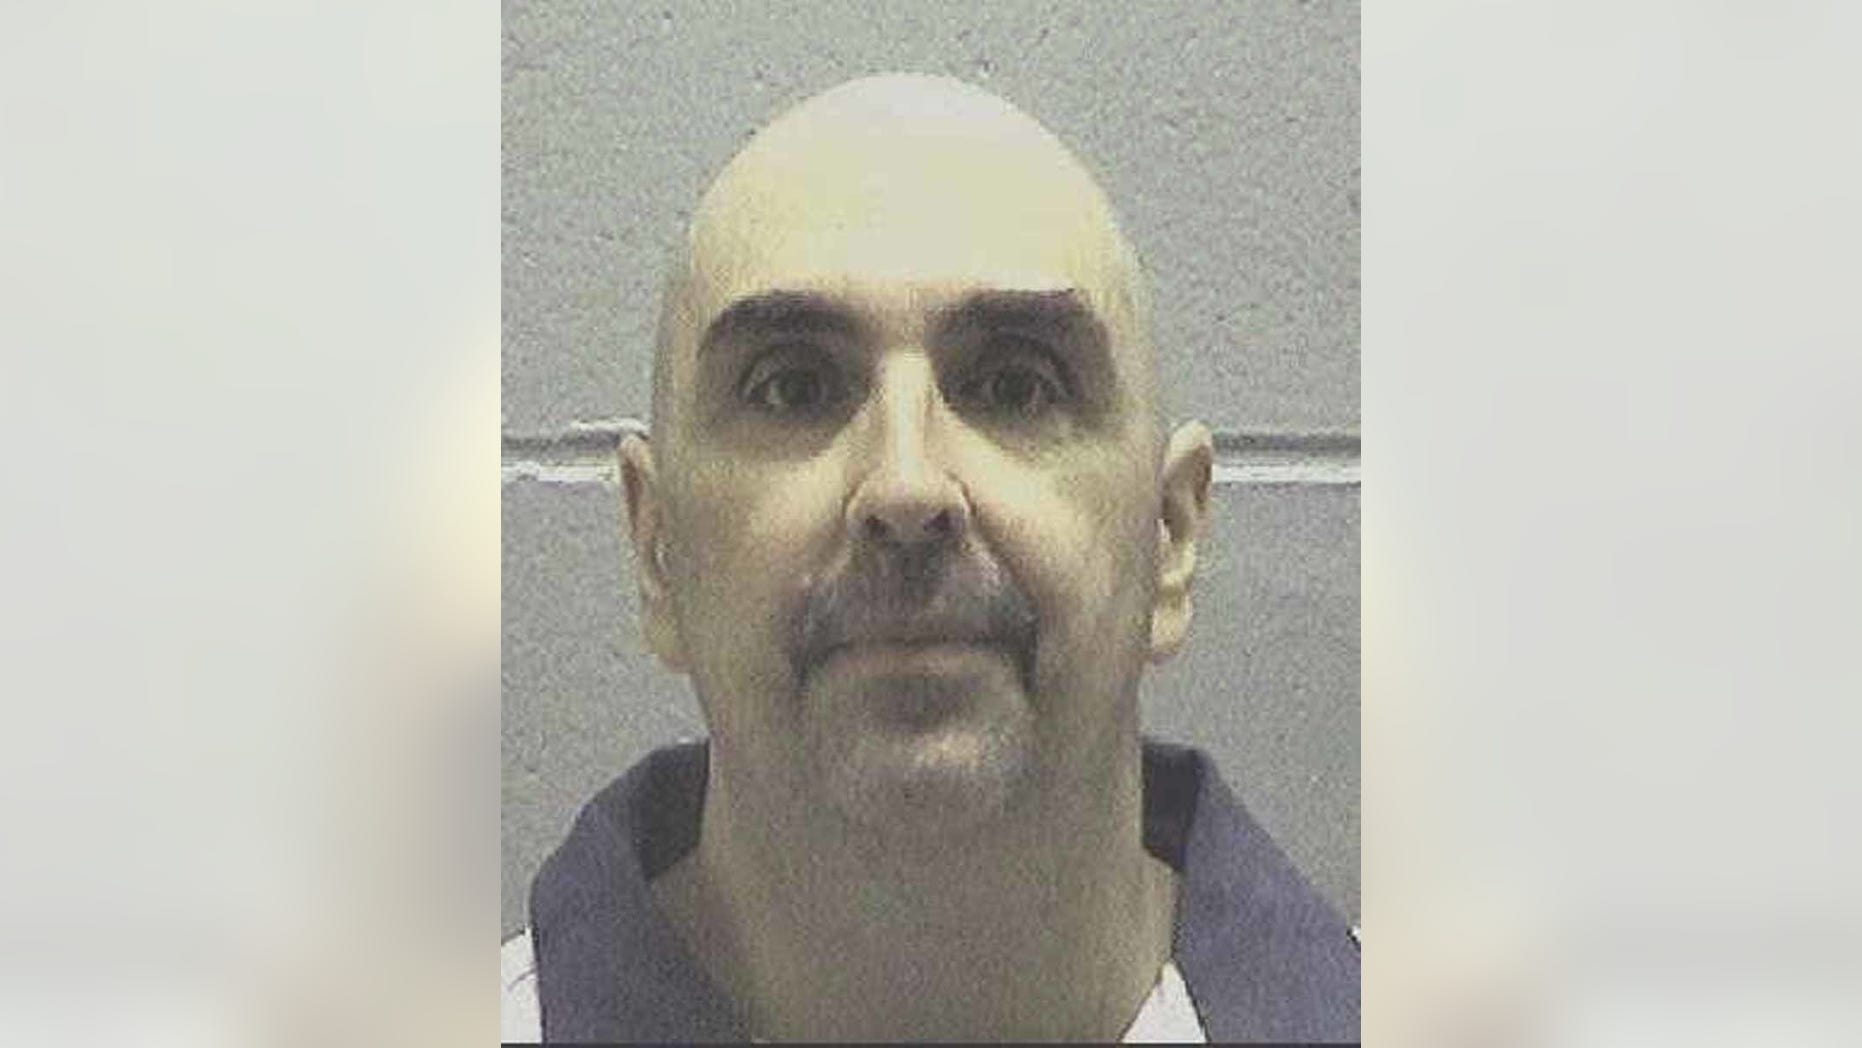 FILE - In this undated photo made available by the Georgia Department of Corrections, shows Steven Frederick Spears. Spears is scheduled to be executed on Wednesday, Nov. 16, 2016. He has refused efforts to spare his life. Spears was convicted of murder in the August 2001 death of Sherri Holland at her home in Dahlonega, GA. (Georgia Department of Corrections via AP)